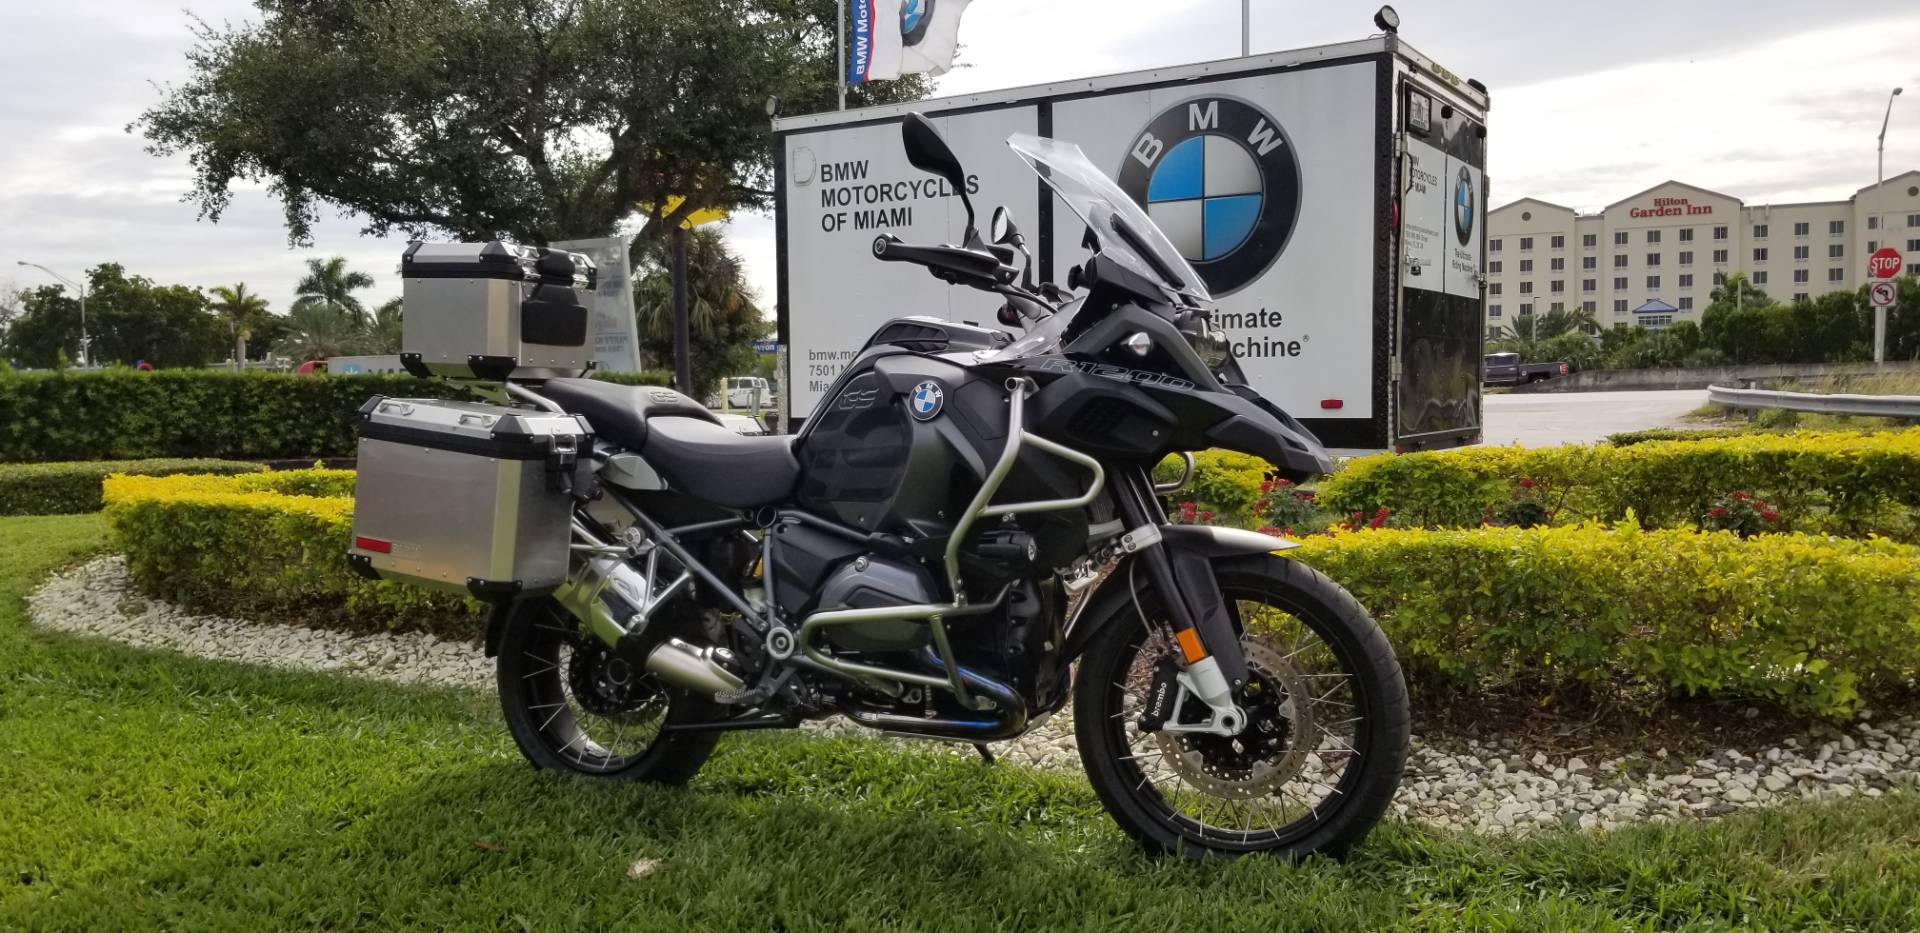 Used 2017 BMW R 1200 GSA for sale, Pre-owned BMW R1200GSA for sale, BMW Motorcycle Adventure, used BMW Adventure triple black, BMW Motorcycles of Miami, Motorcycles of Miami, Motorcycles Miami, New Motorcycles, Used Motorcycles, pre-owned. #BMWMotorcyclesOfMiami #MotorcyclesOfMiami - Photo 22